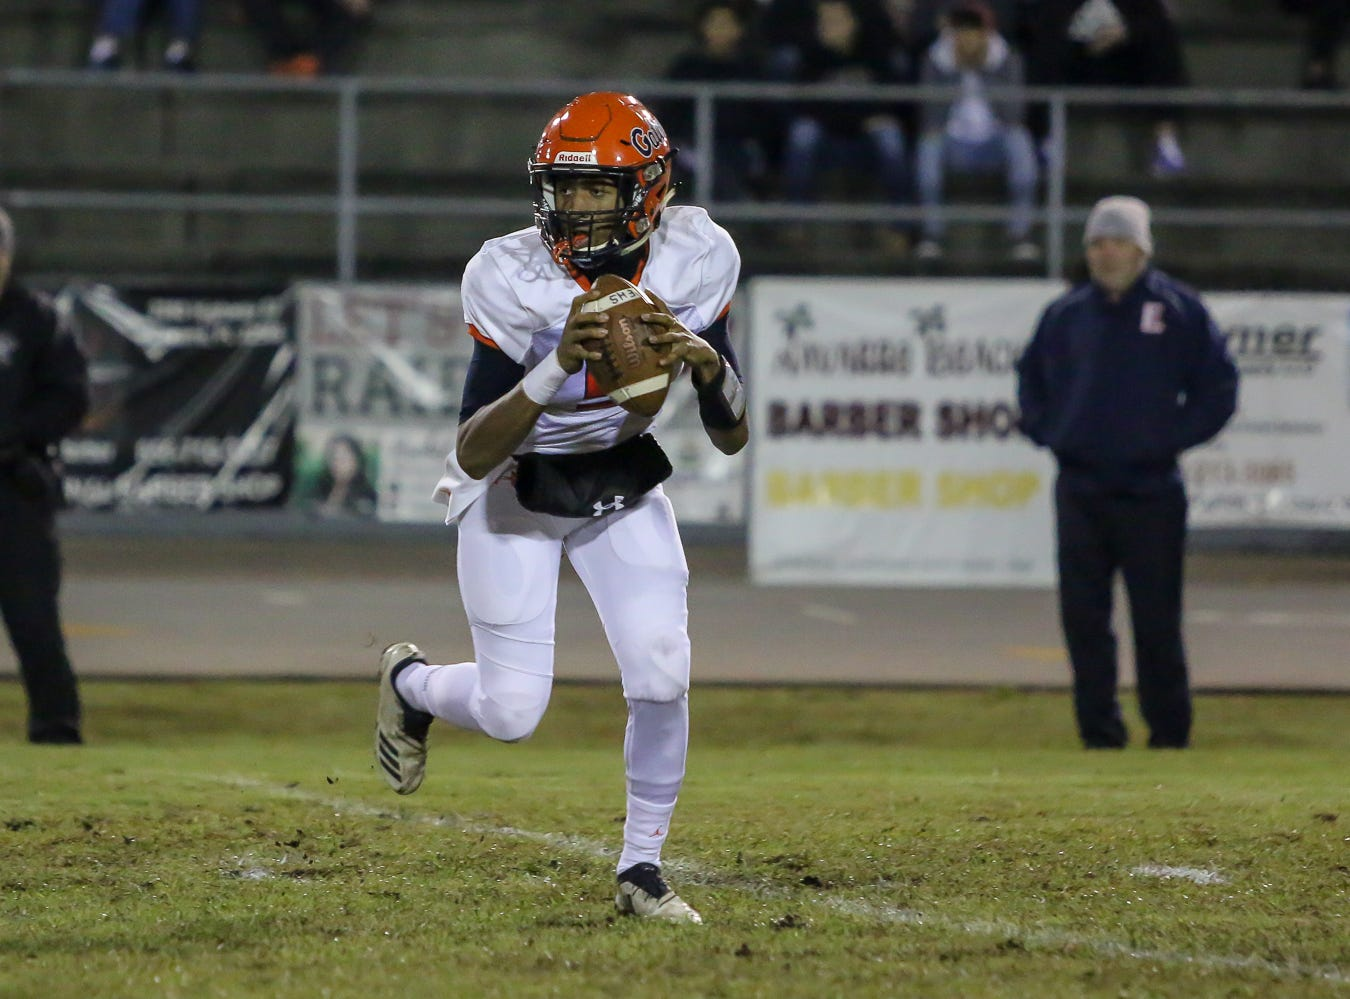 Escambia quarterback AV Smith (5) rolls to his left and looks for a receiver to pass to against the Raiders in the Region 1-6A Semifinal game at Navarre High School on Friday, November 16, 2018.